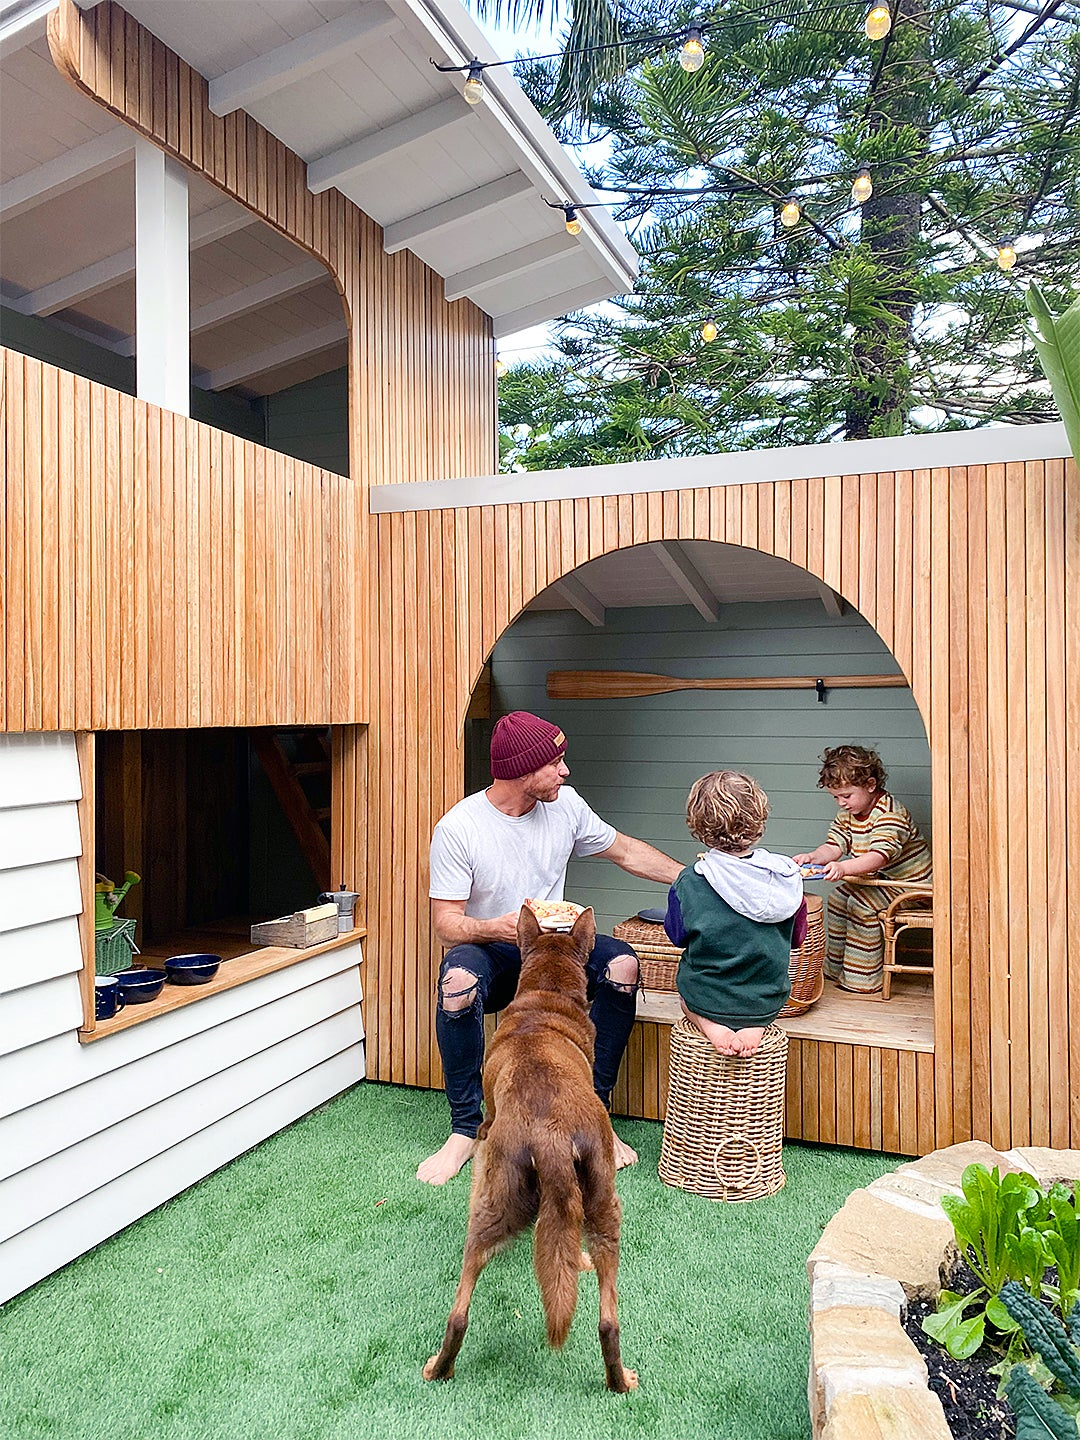 00-FEATURE-australian-cubby-house-fort-domino